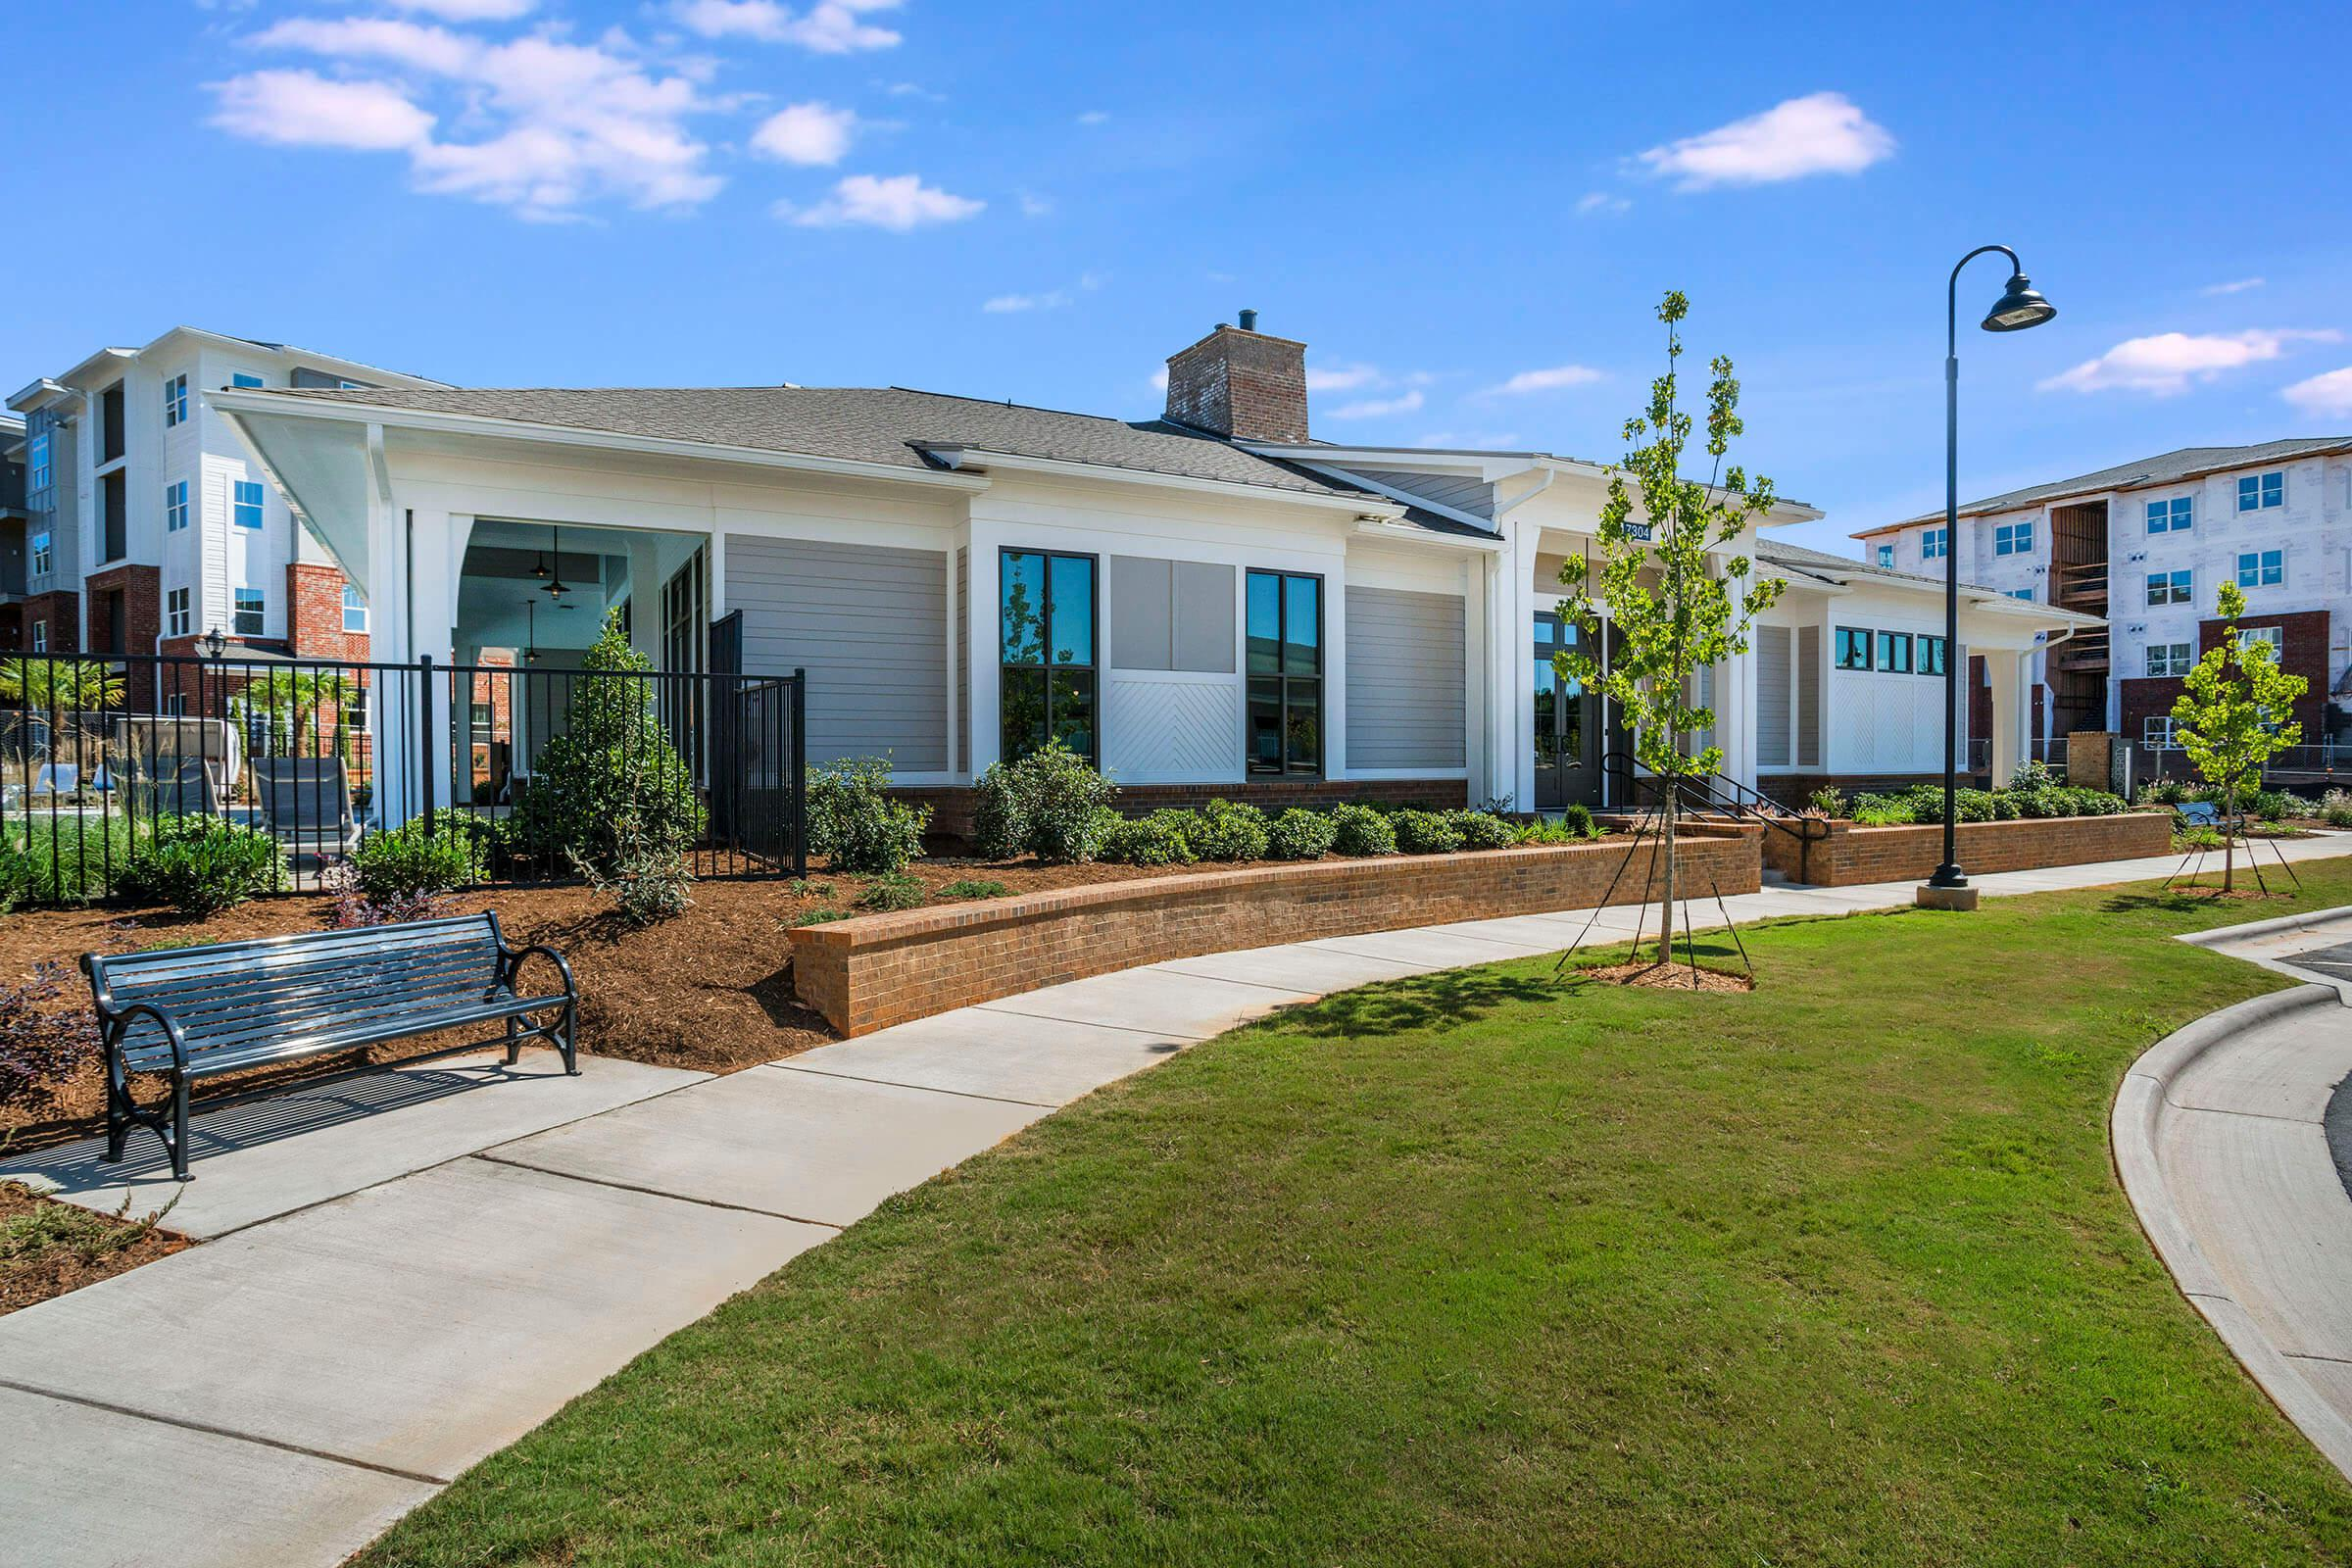 PROSPERITY-VILLAGE-APARTMENTS-CHARLOTTE-NC-EXTERIOR-05.jpg